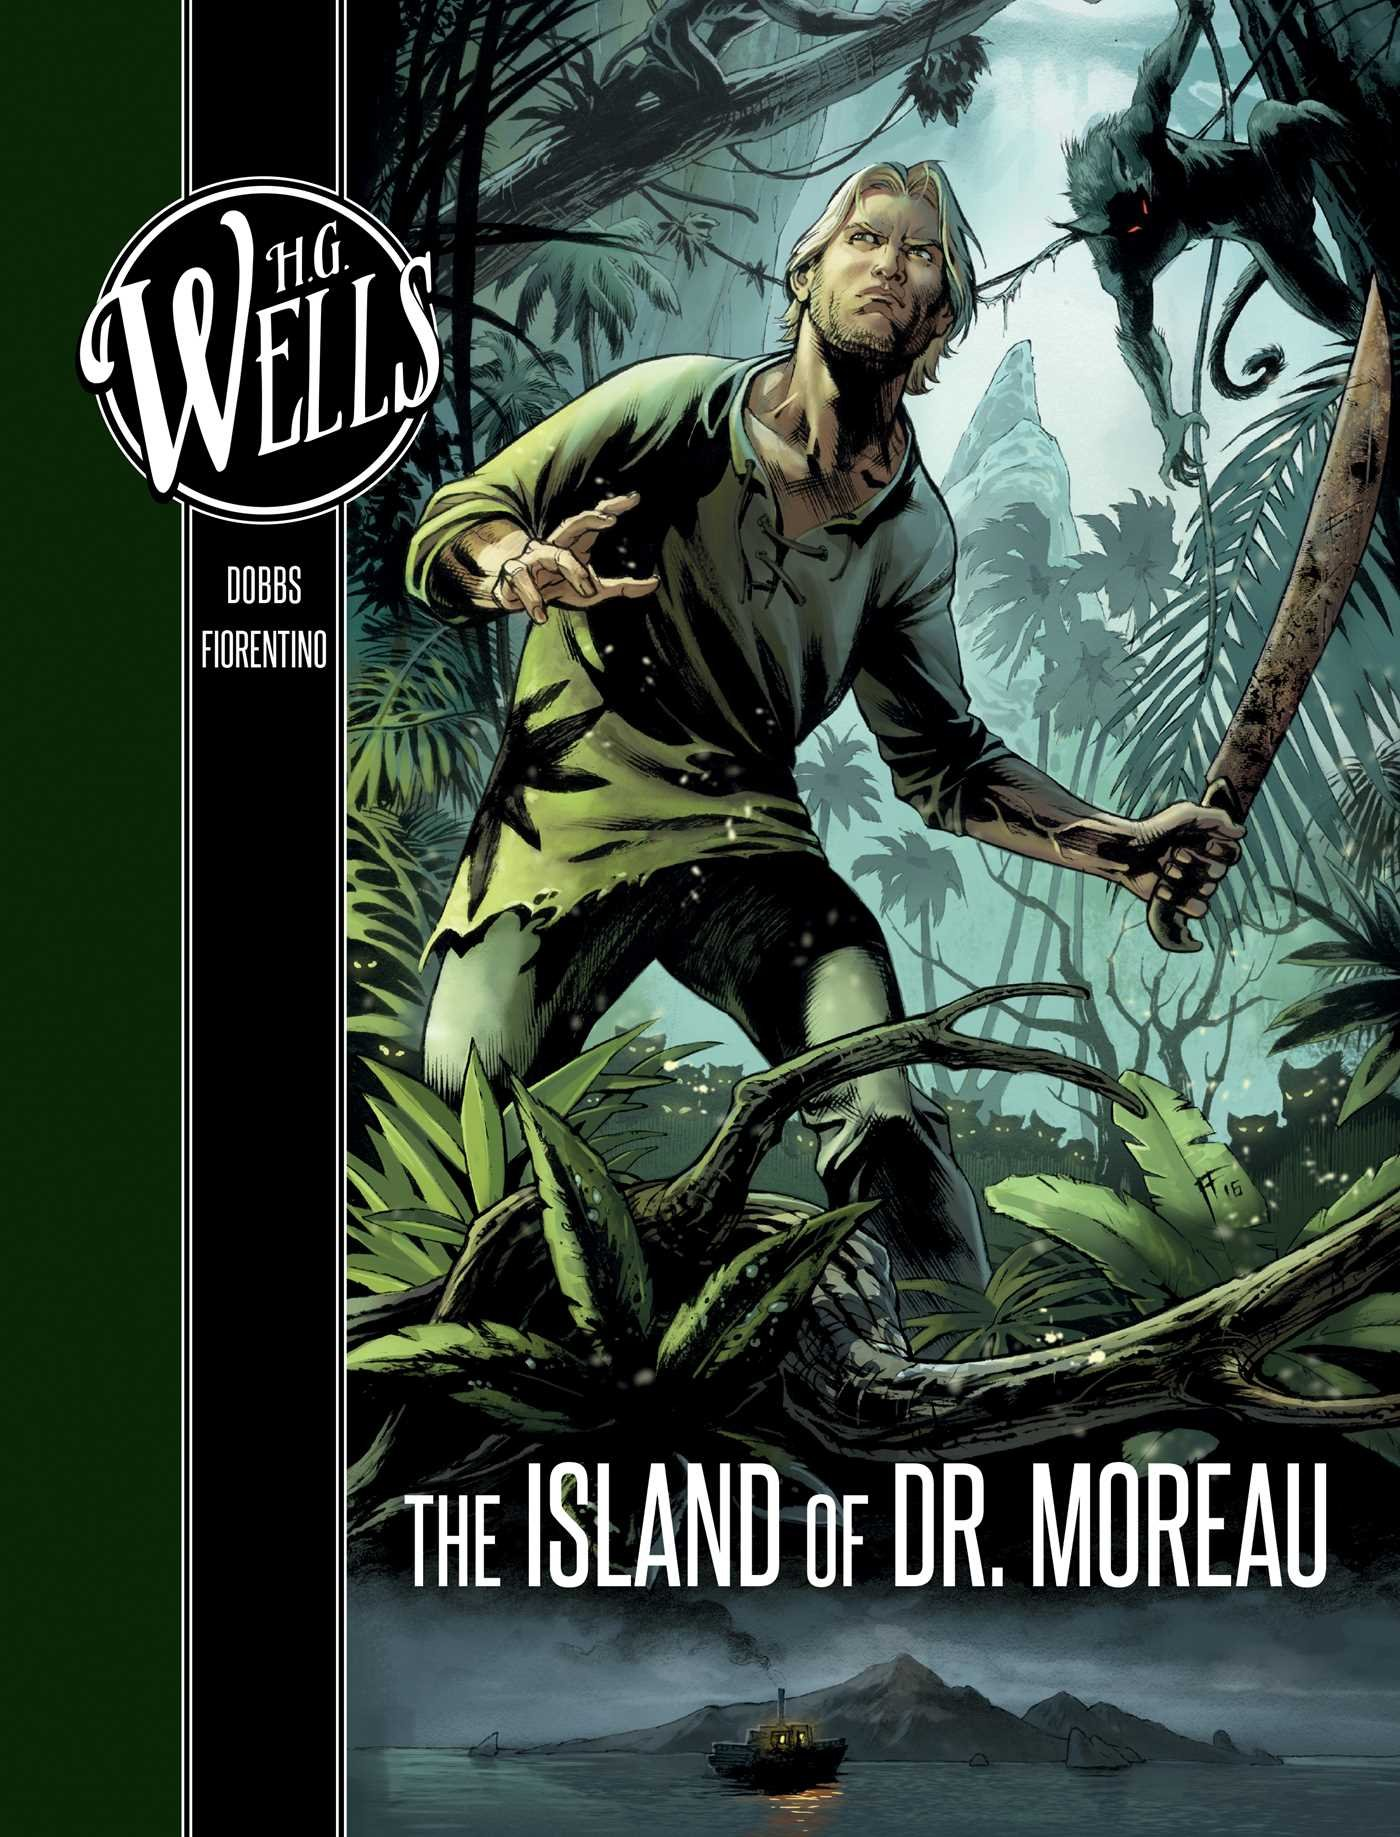 H. G. Wells: The Island of Dr. Moreau: Dobbs, Fiorentino, Fabrizio:  9781683832034: Amazon.com: Books